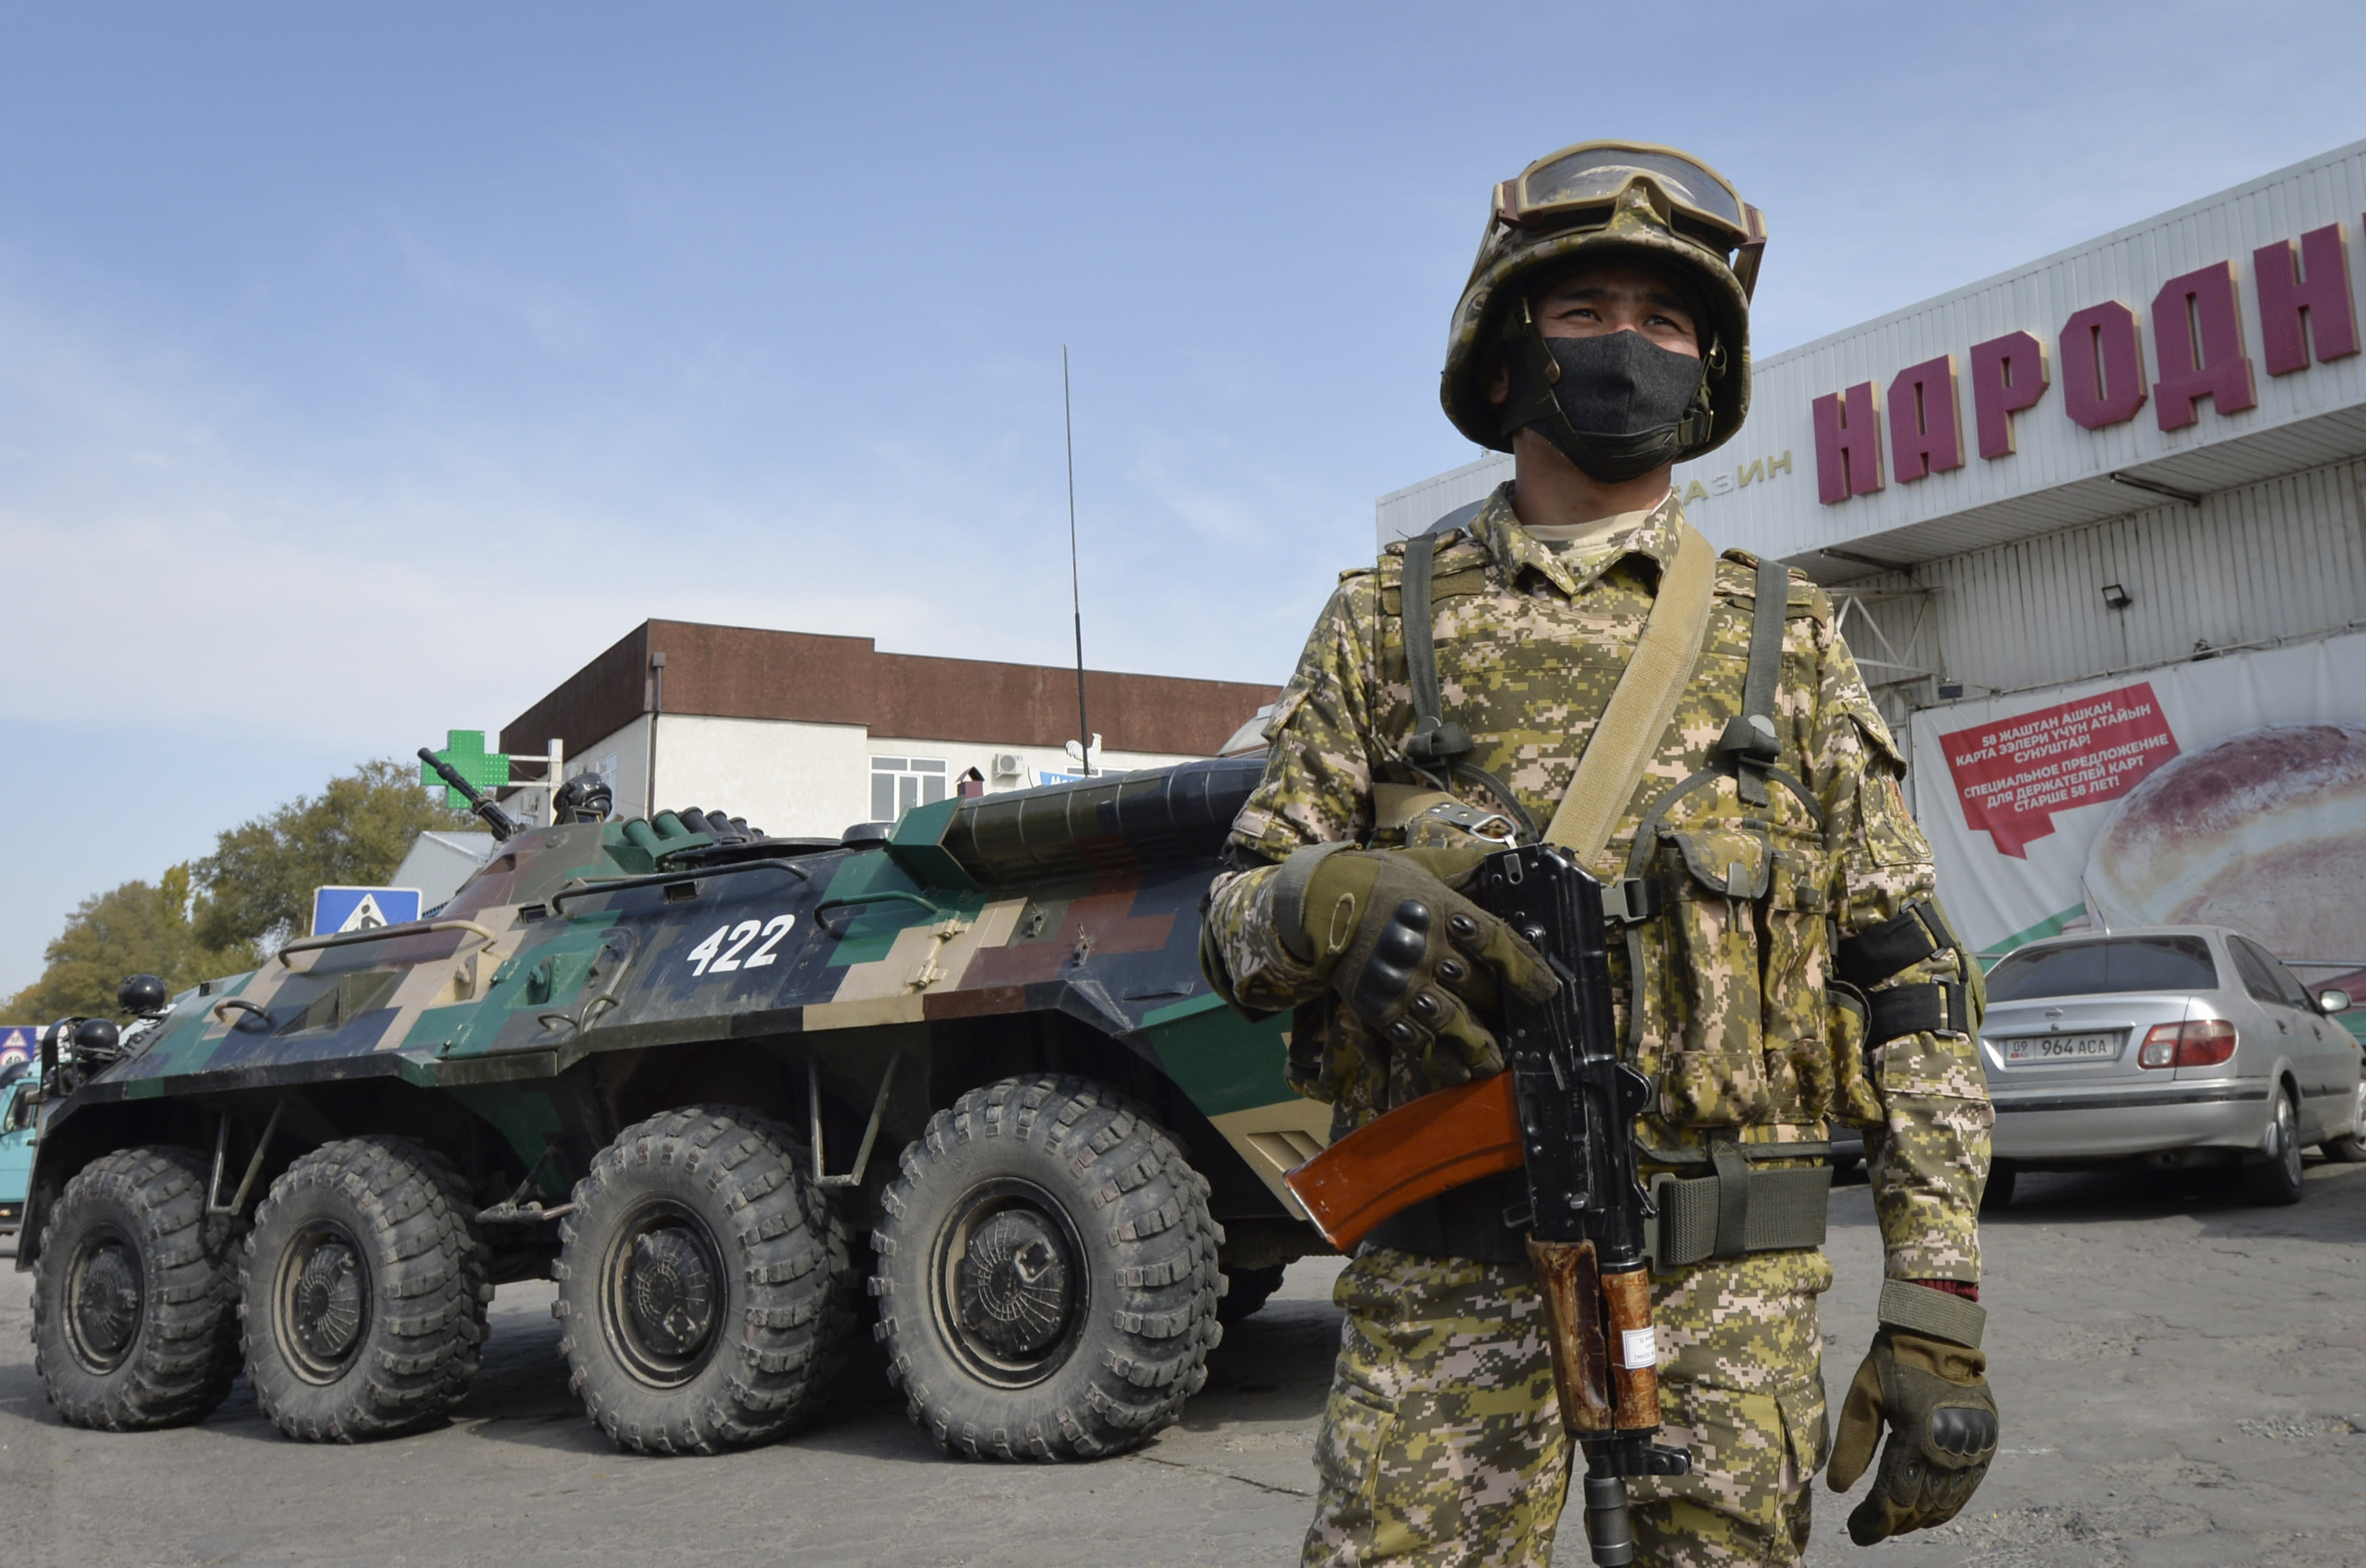 Soldiers of Kyrgyz army stand at checkpoint on city street in Bishkek, Kyrgyzstan, Saturday, Oct. 10, 2020. President Sooronbai Jeenbekov decreed the state of emergency in the capital and ordered the military to deploy troops to Bishkek to enforce the measure. (AP Photo/Vladimir Voronin)